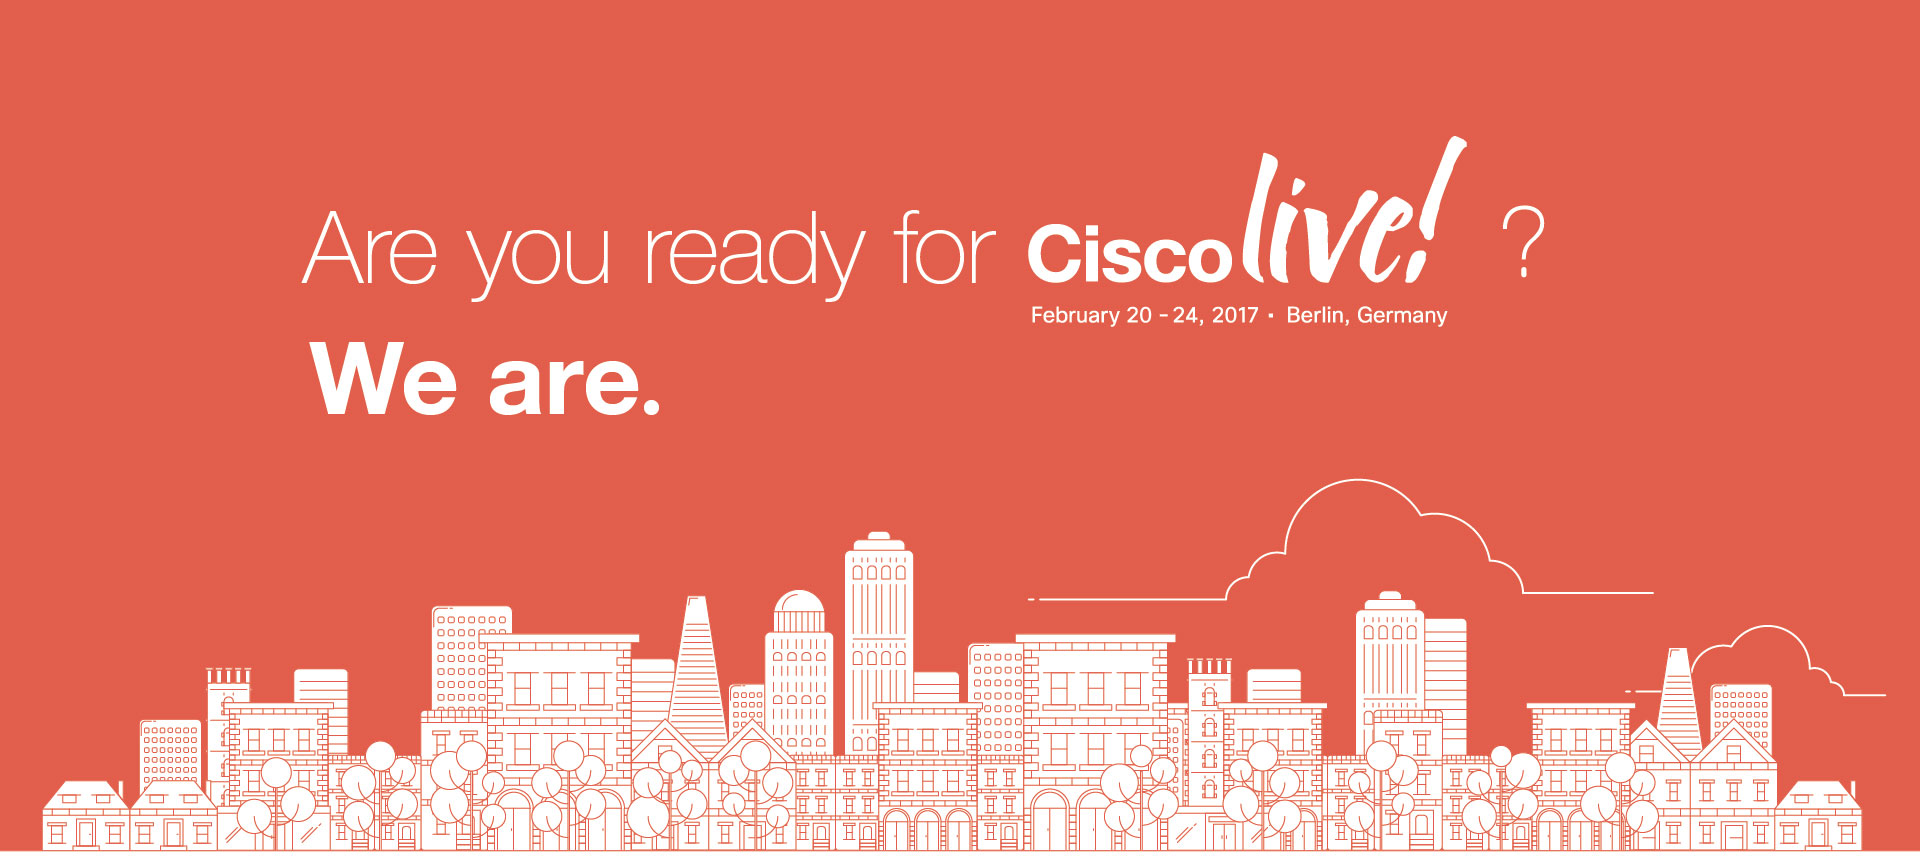 cisco-live-01a_mail-01